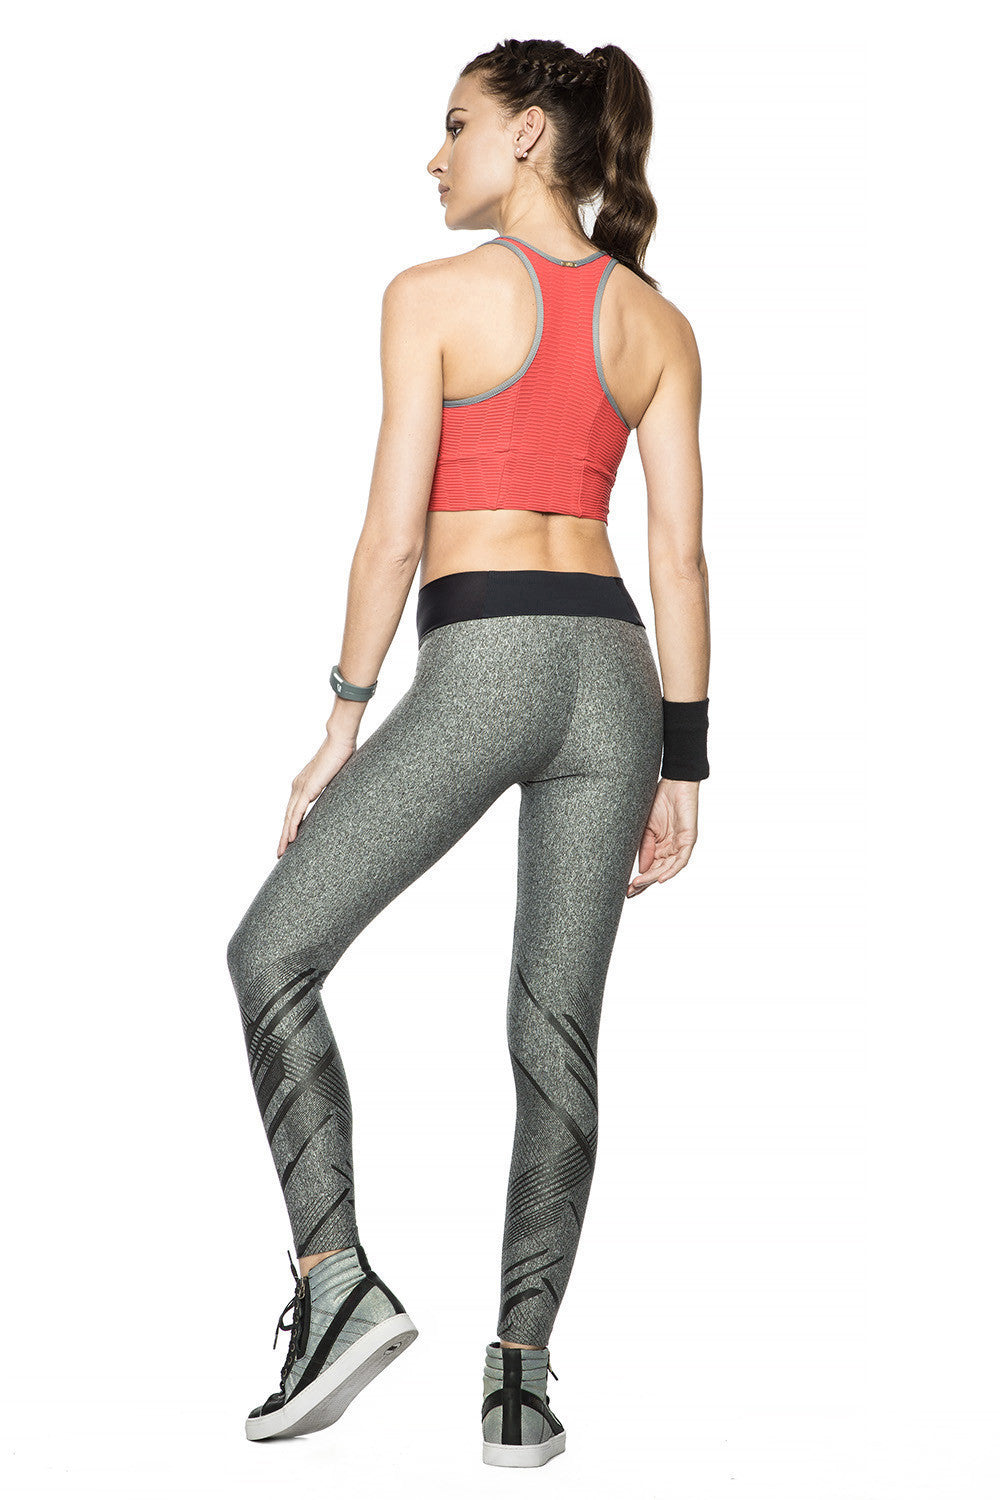 Super Fit Leggings